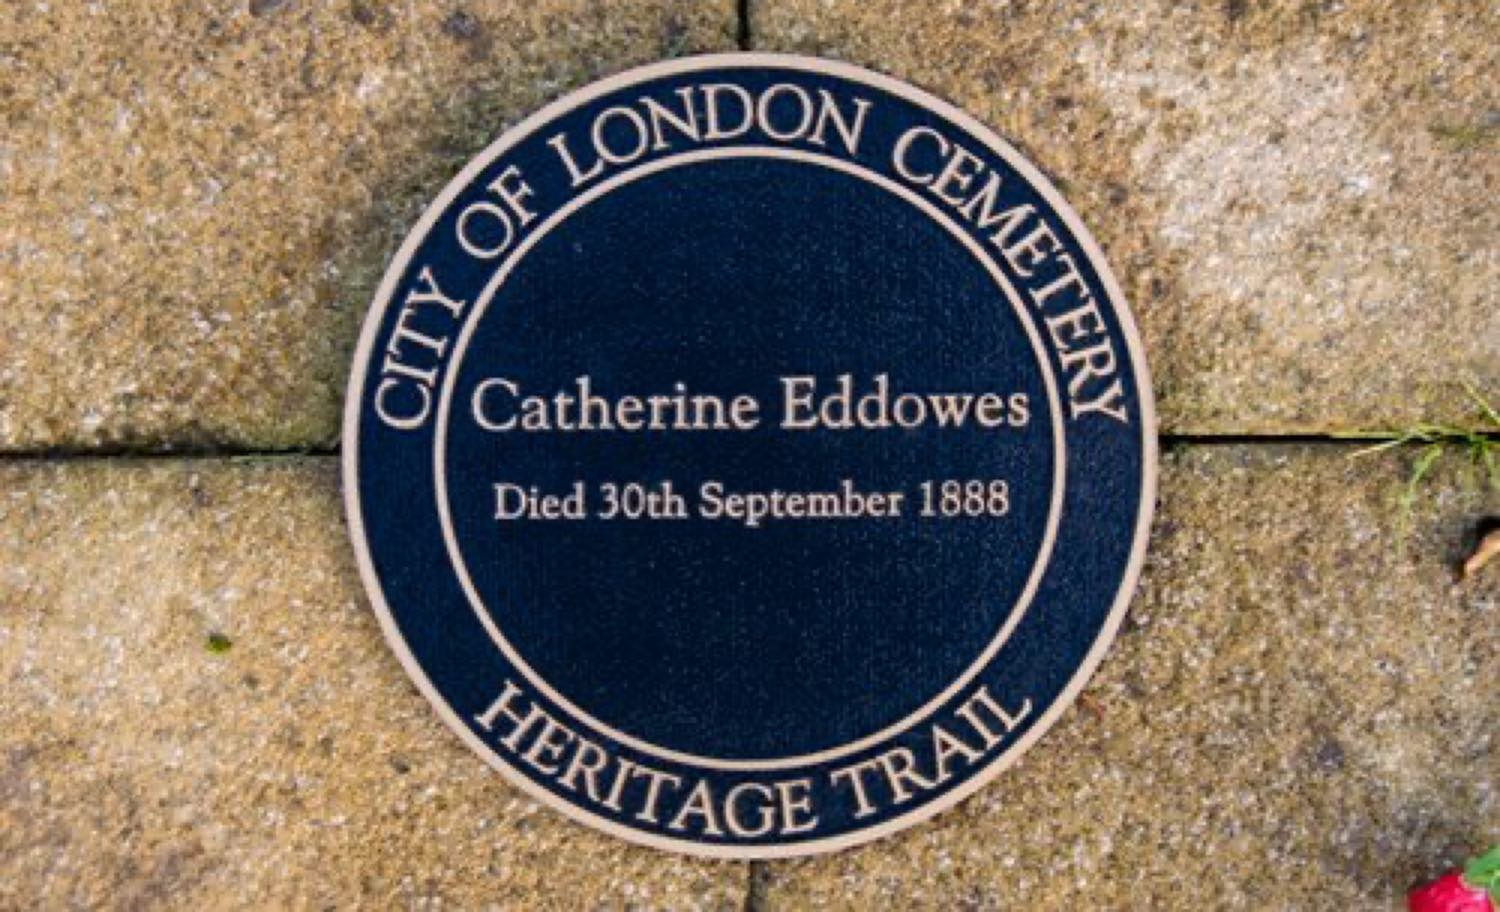 In memory of Catherine Eddowes - one of the victims